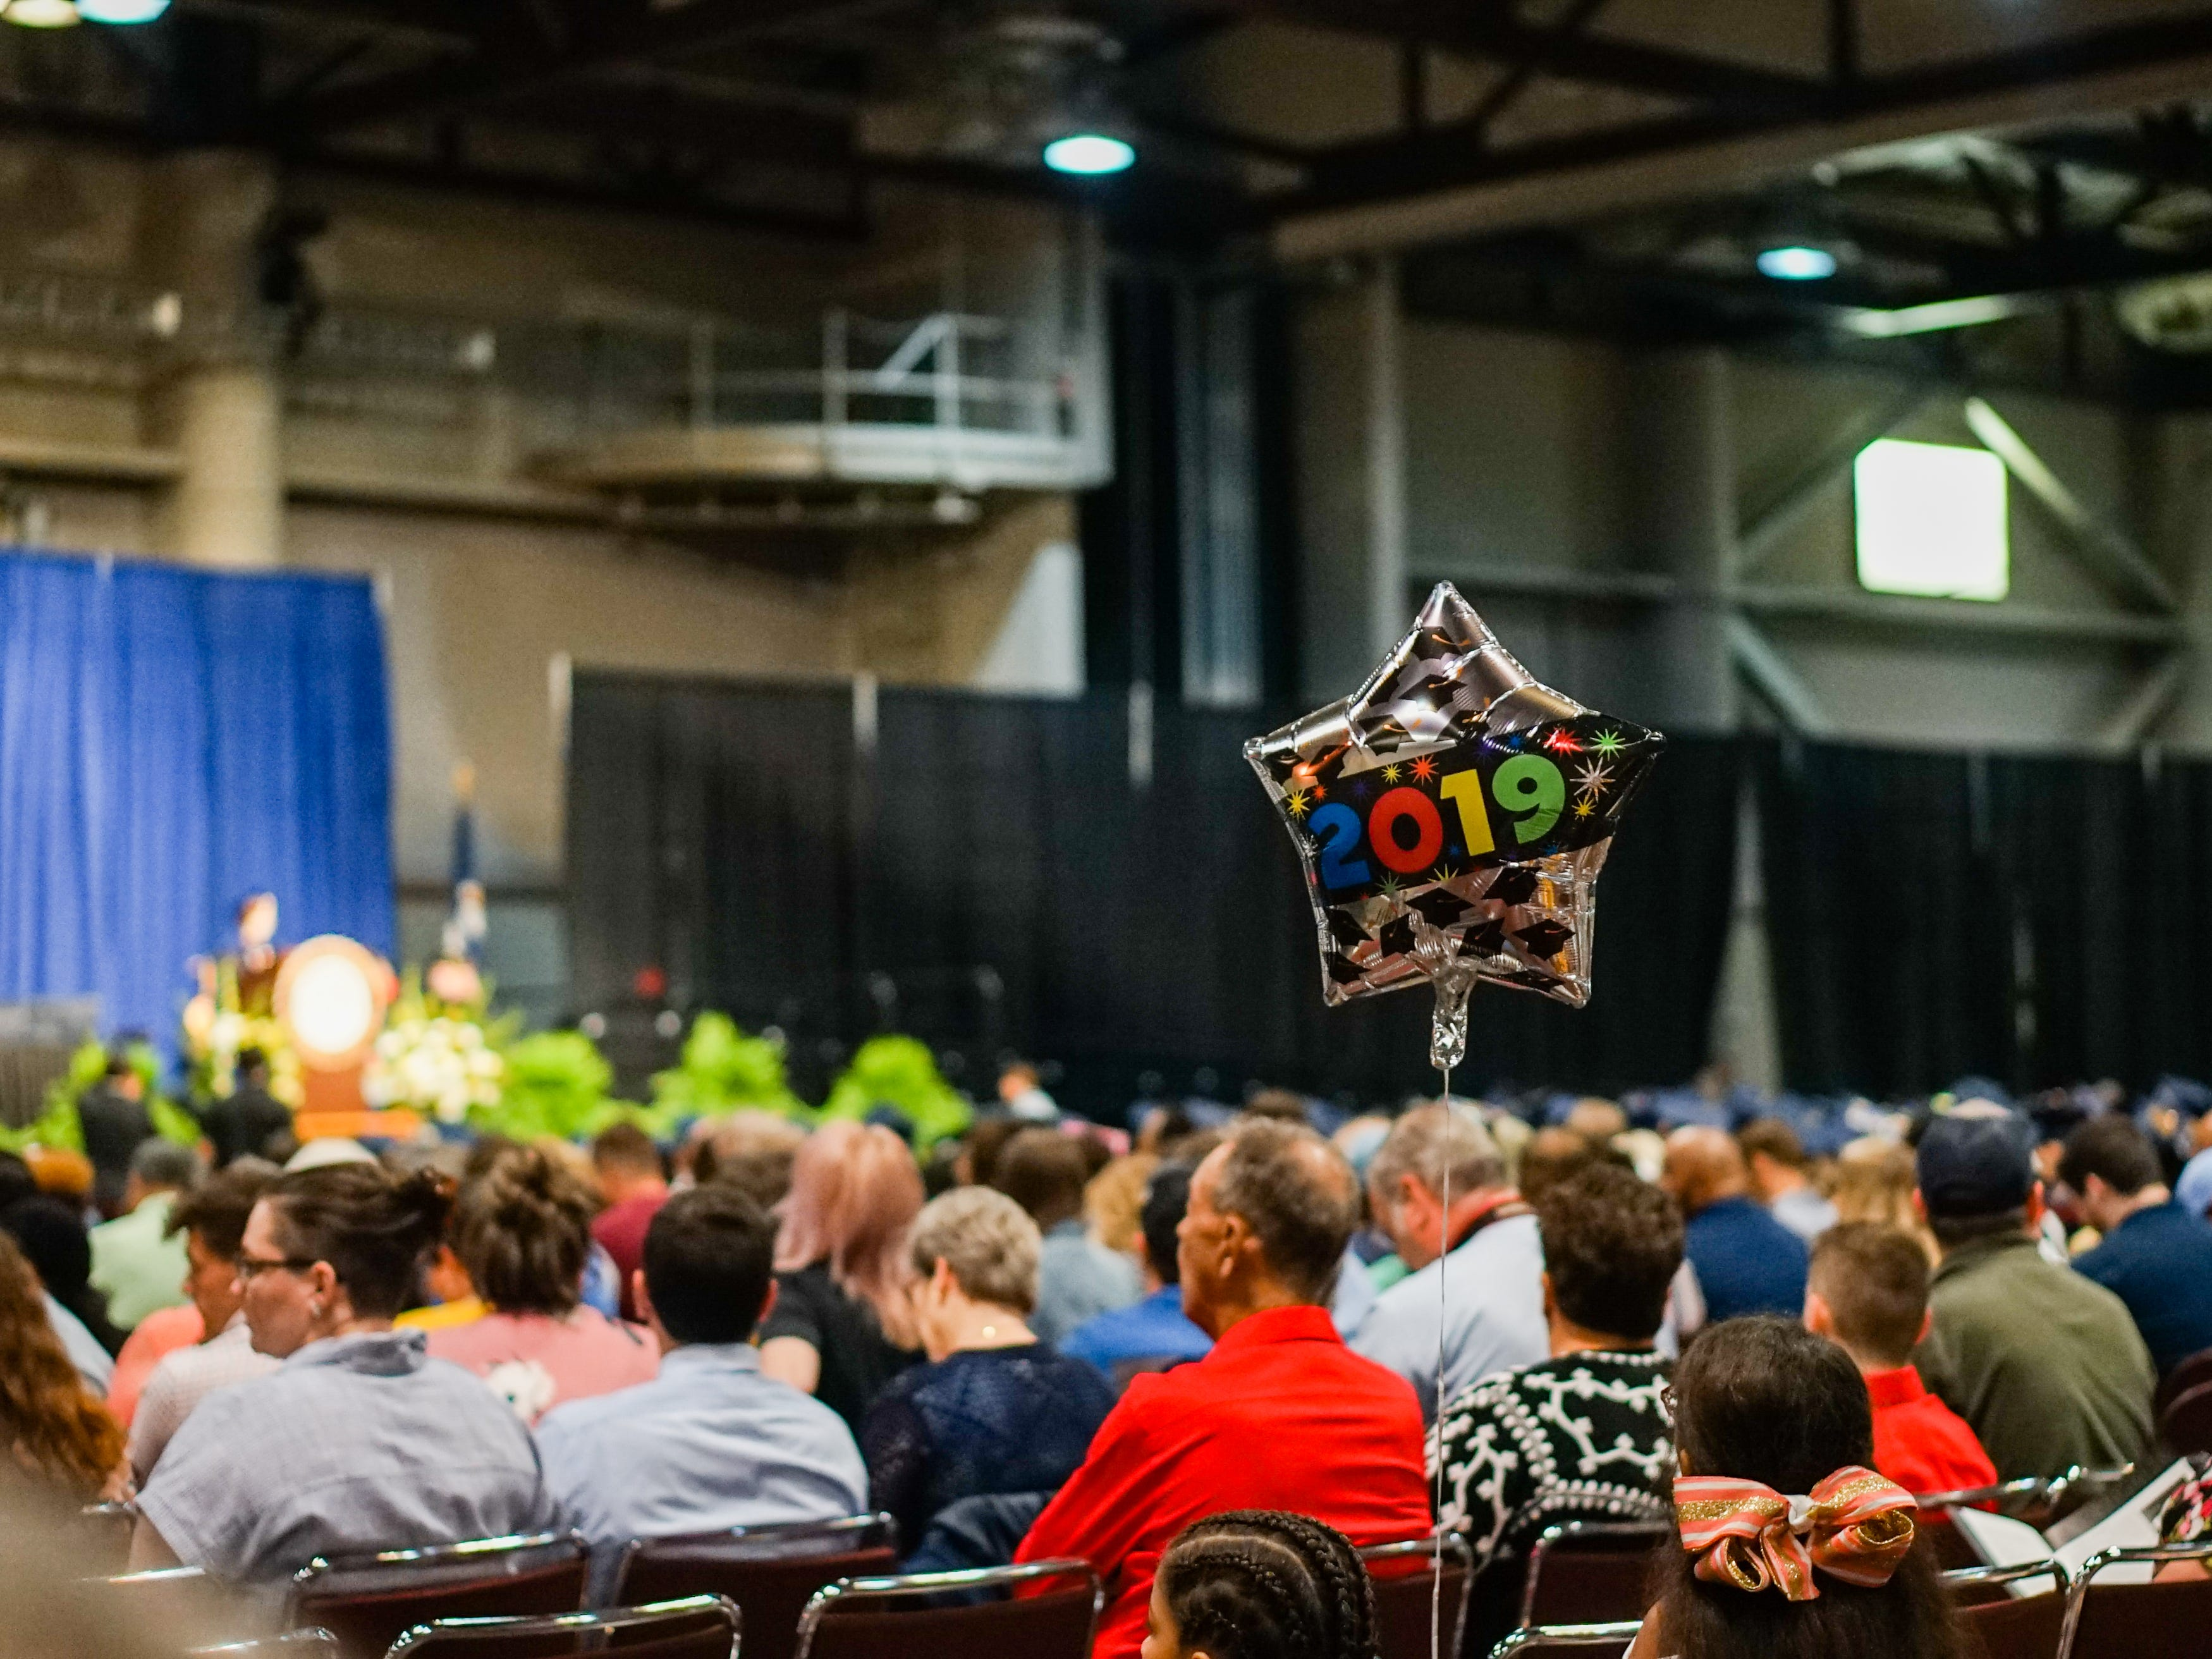 South Louisiana Community College holds its commencement ceremonies at the Cajundome in Lafayette Thursday, May 9, 2019.